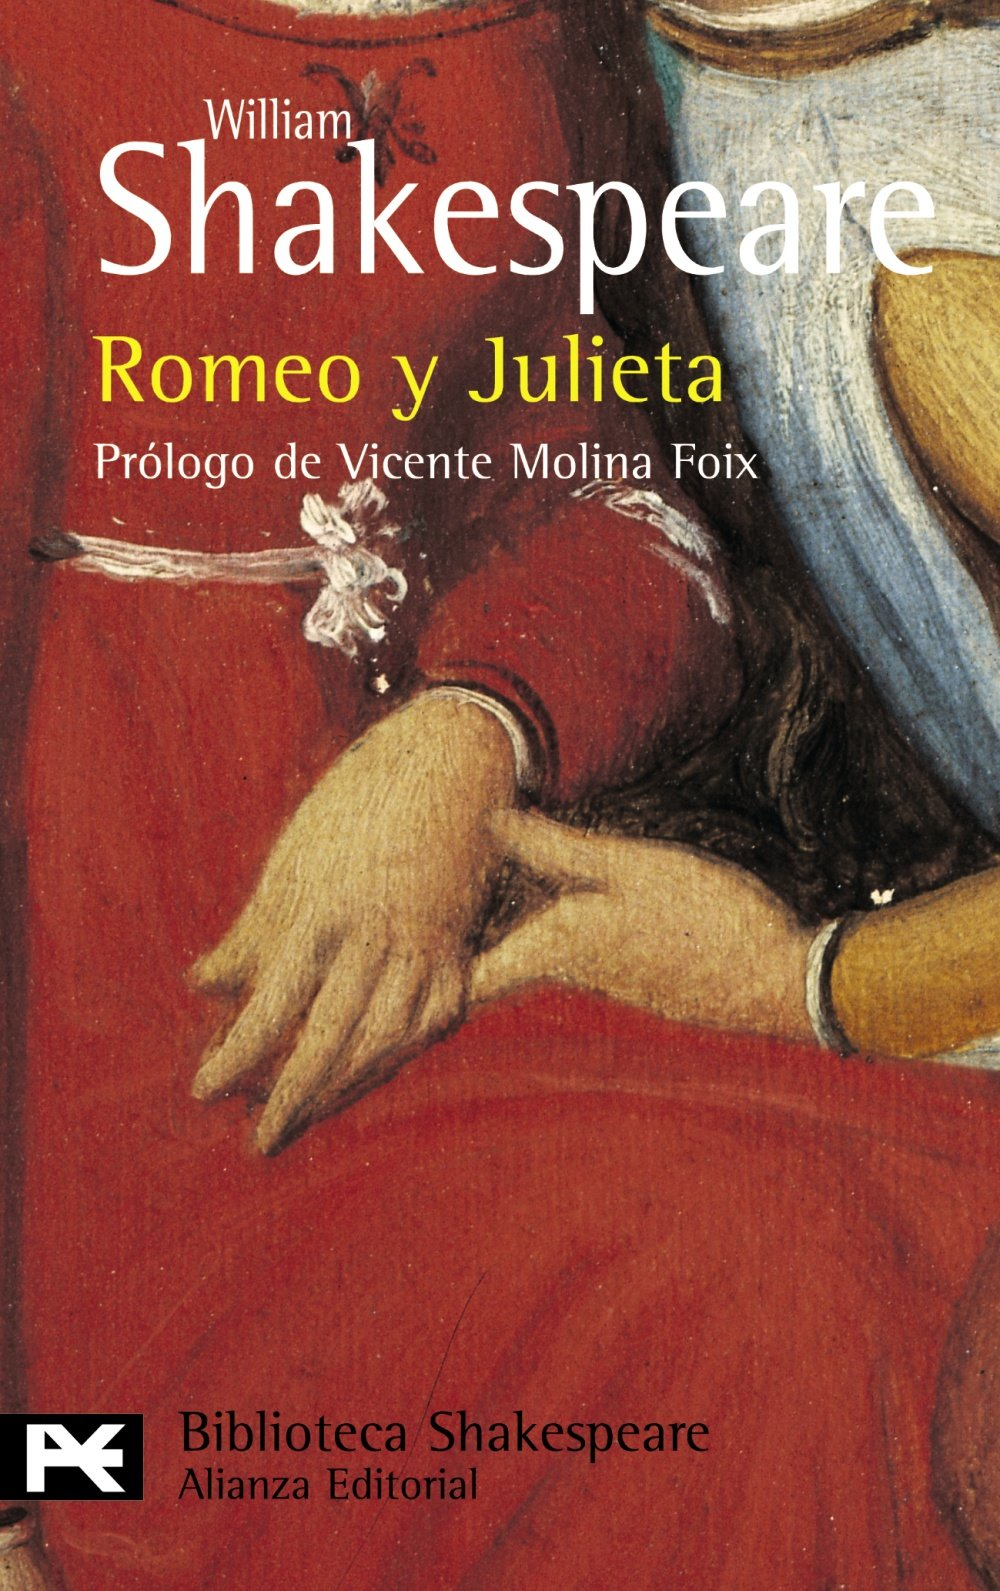 Romeo y Julieta El Libro De Bolsillo - Bibliotecas De Autor - Biblioteca Shakespeare: Amazon.es: William Shakespeare, Vicente Molina Foix, Luis Astrana ...